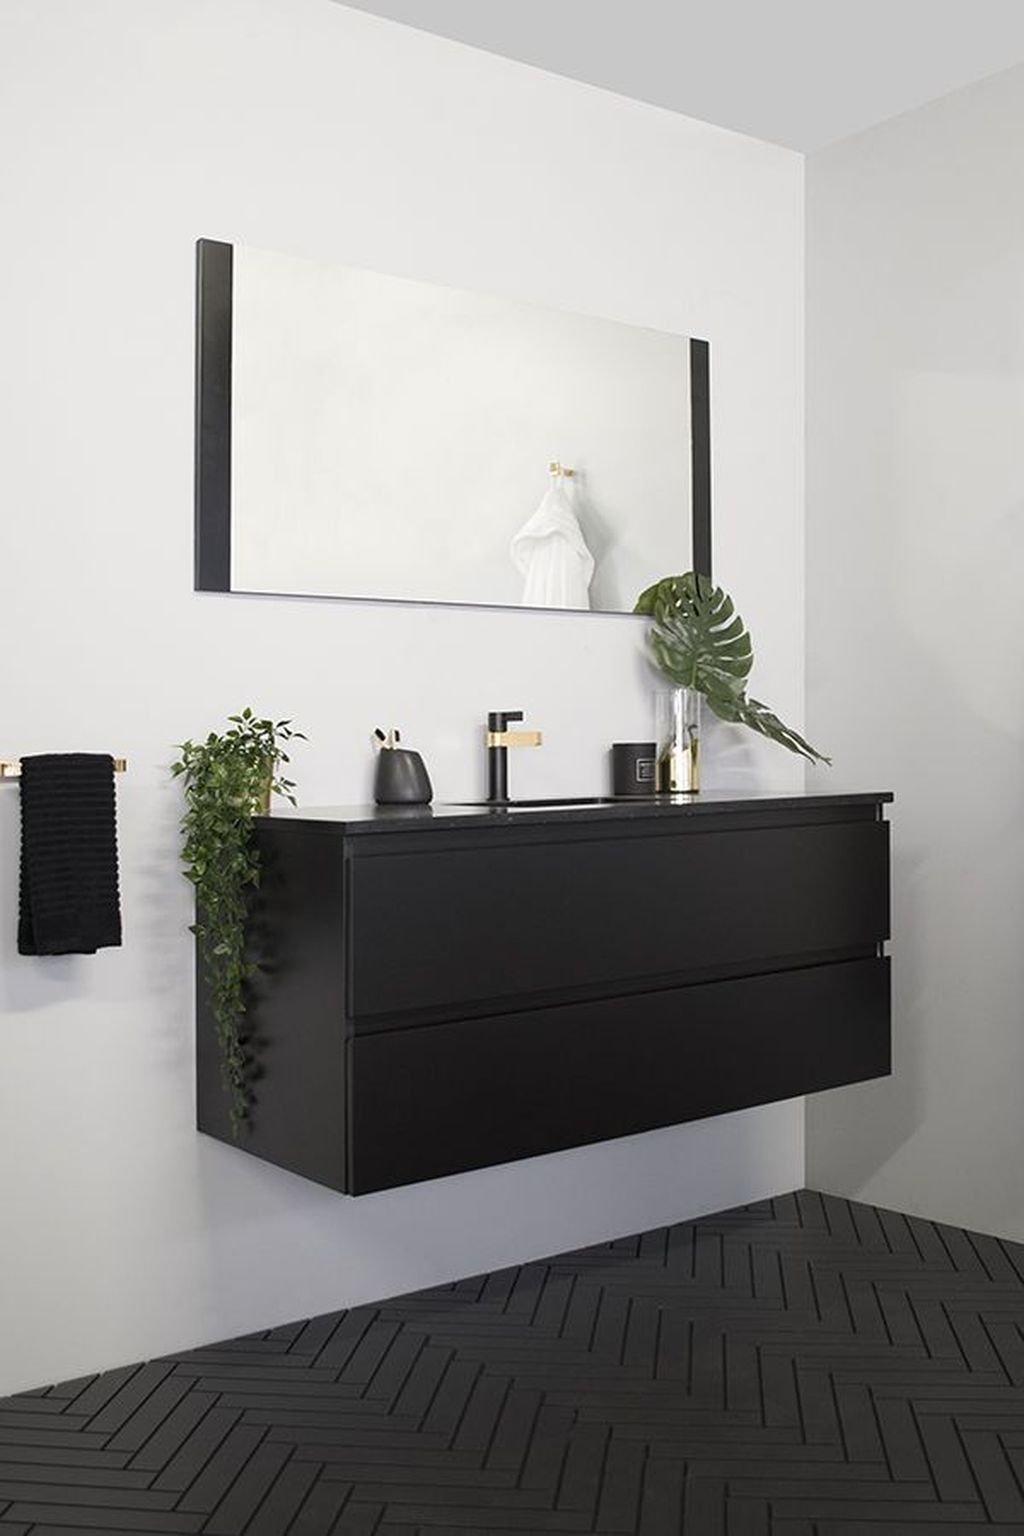 black floating cabinet, black patterned floor, white wall, black framed mirror